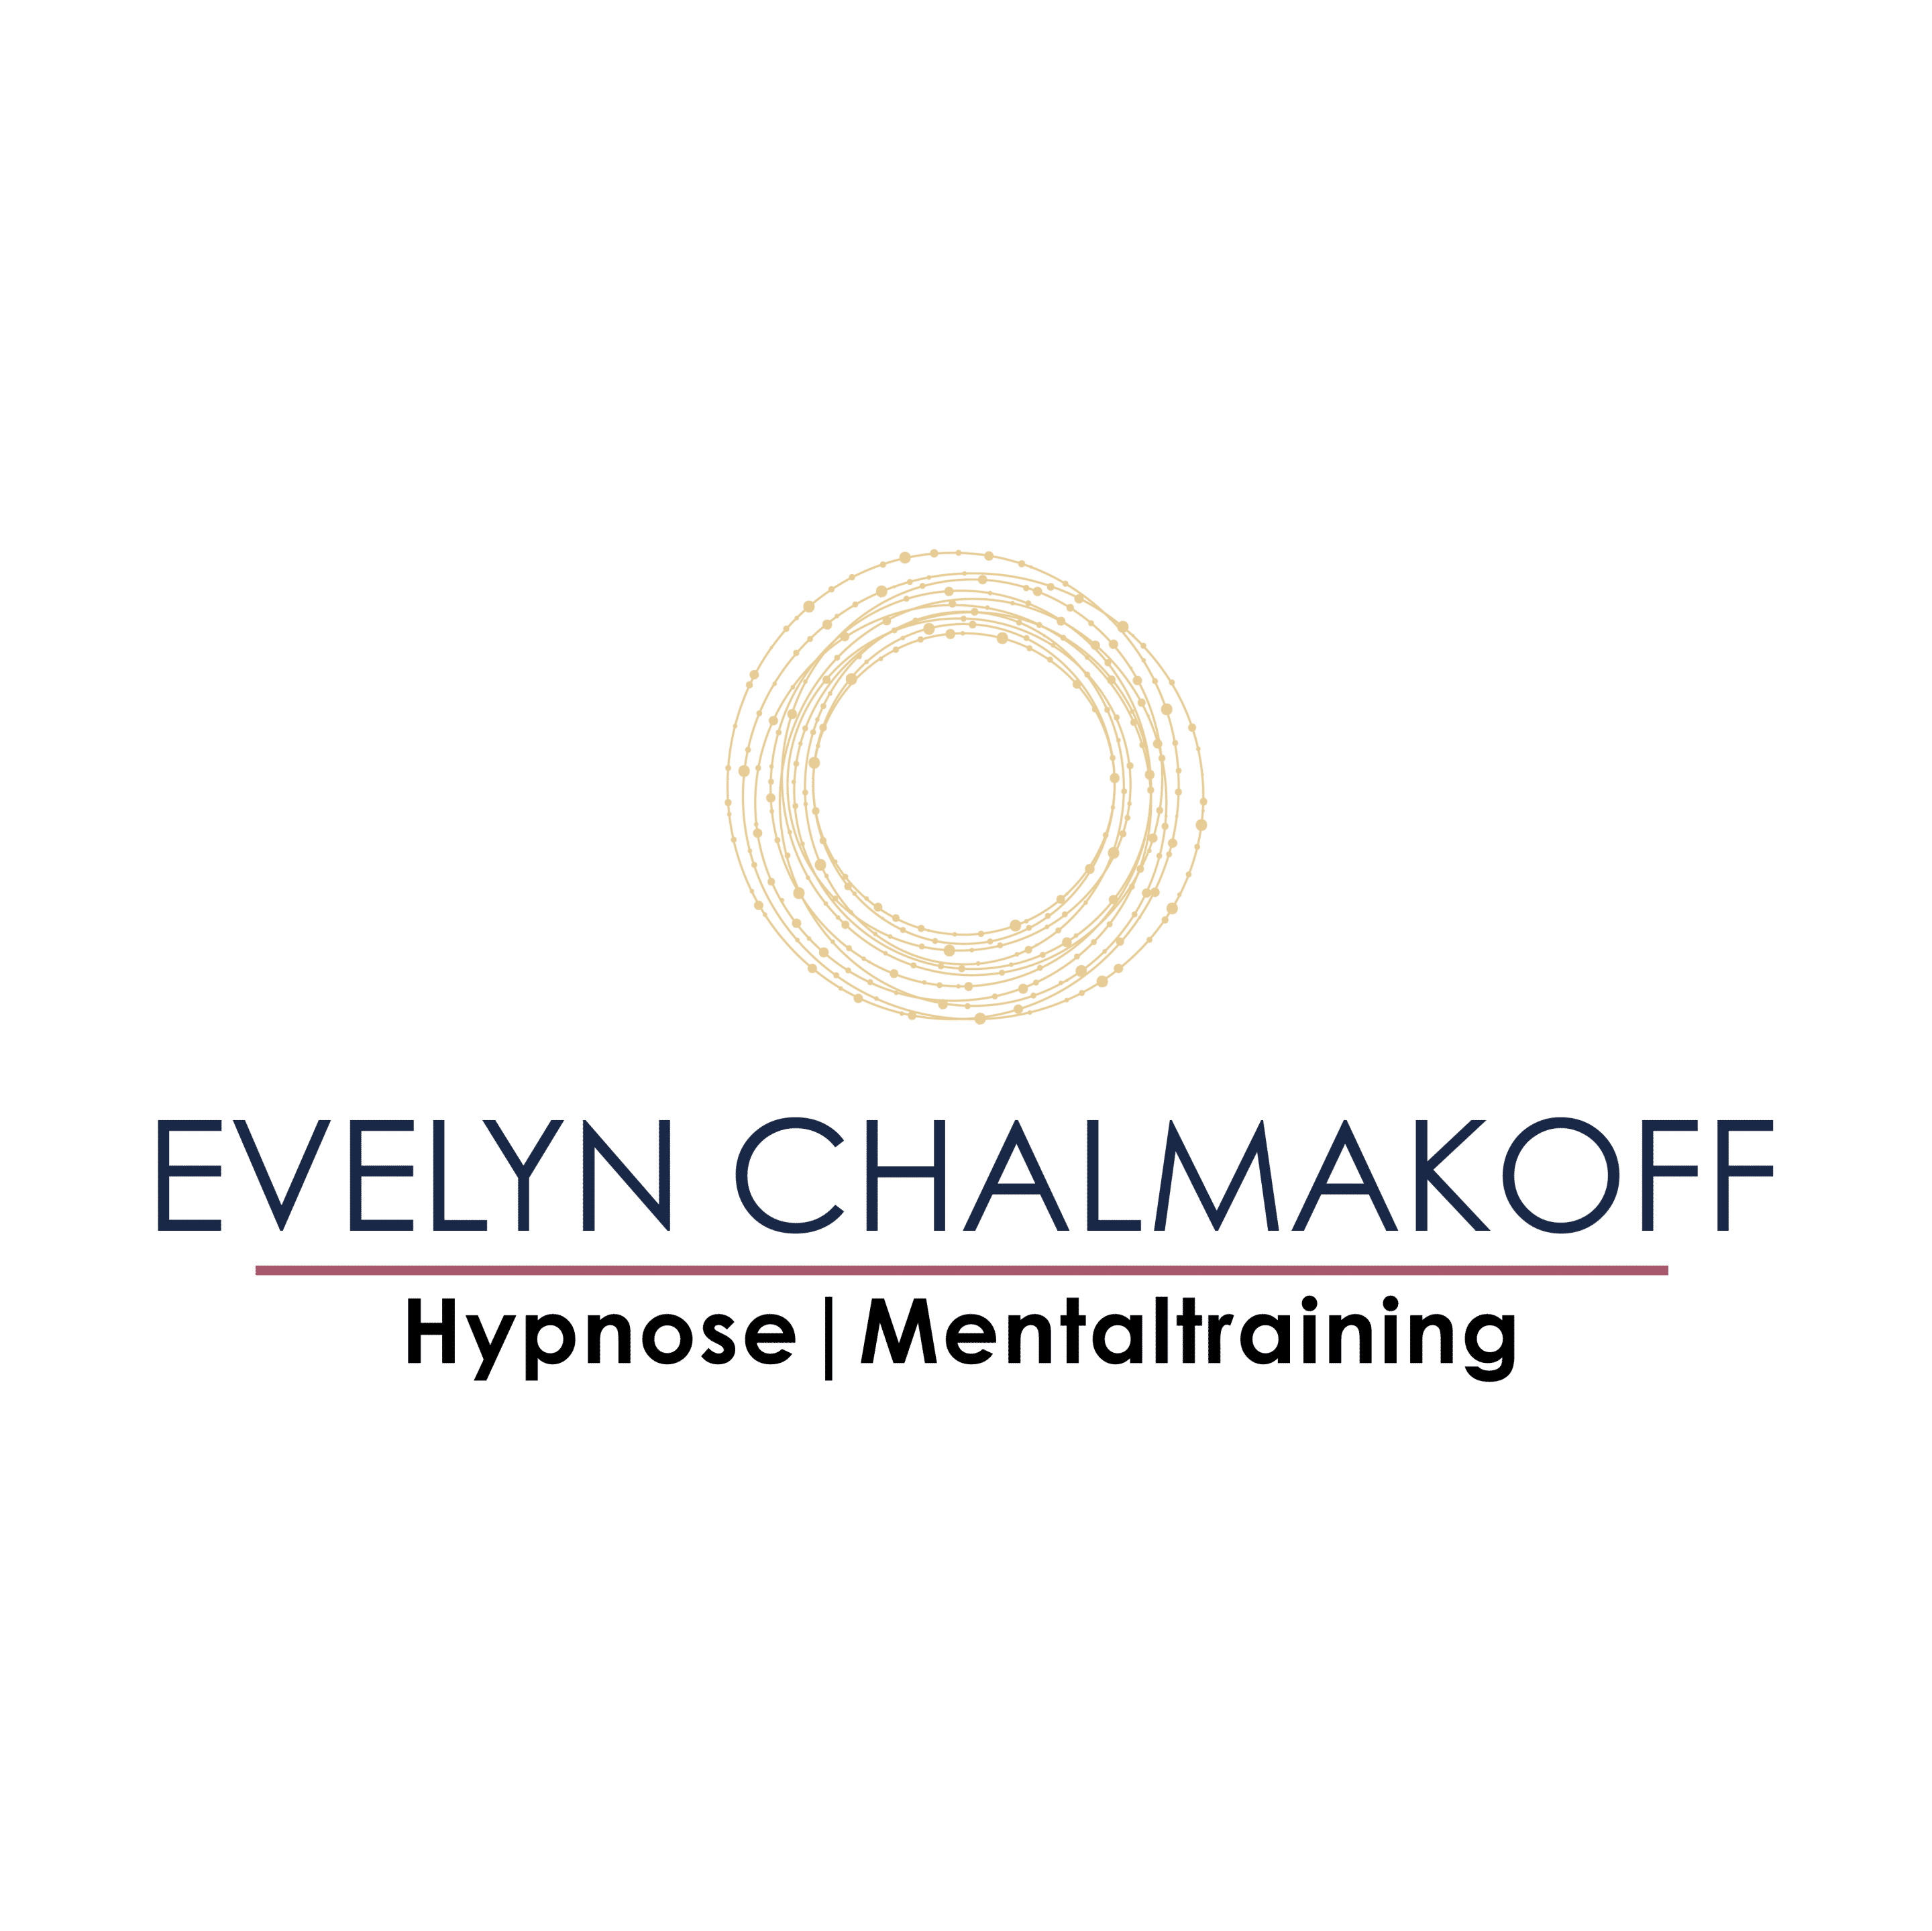 Evelyn Chalmakoff